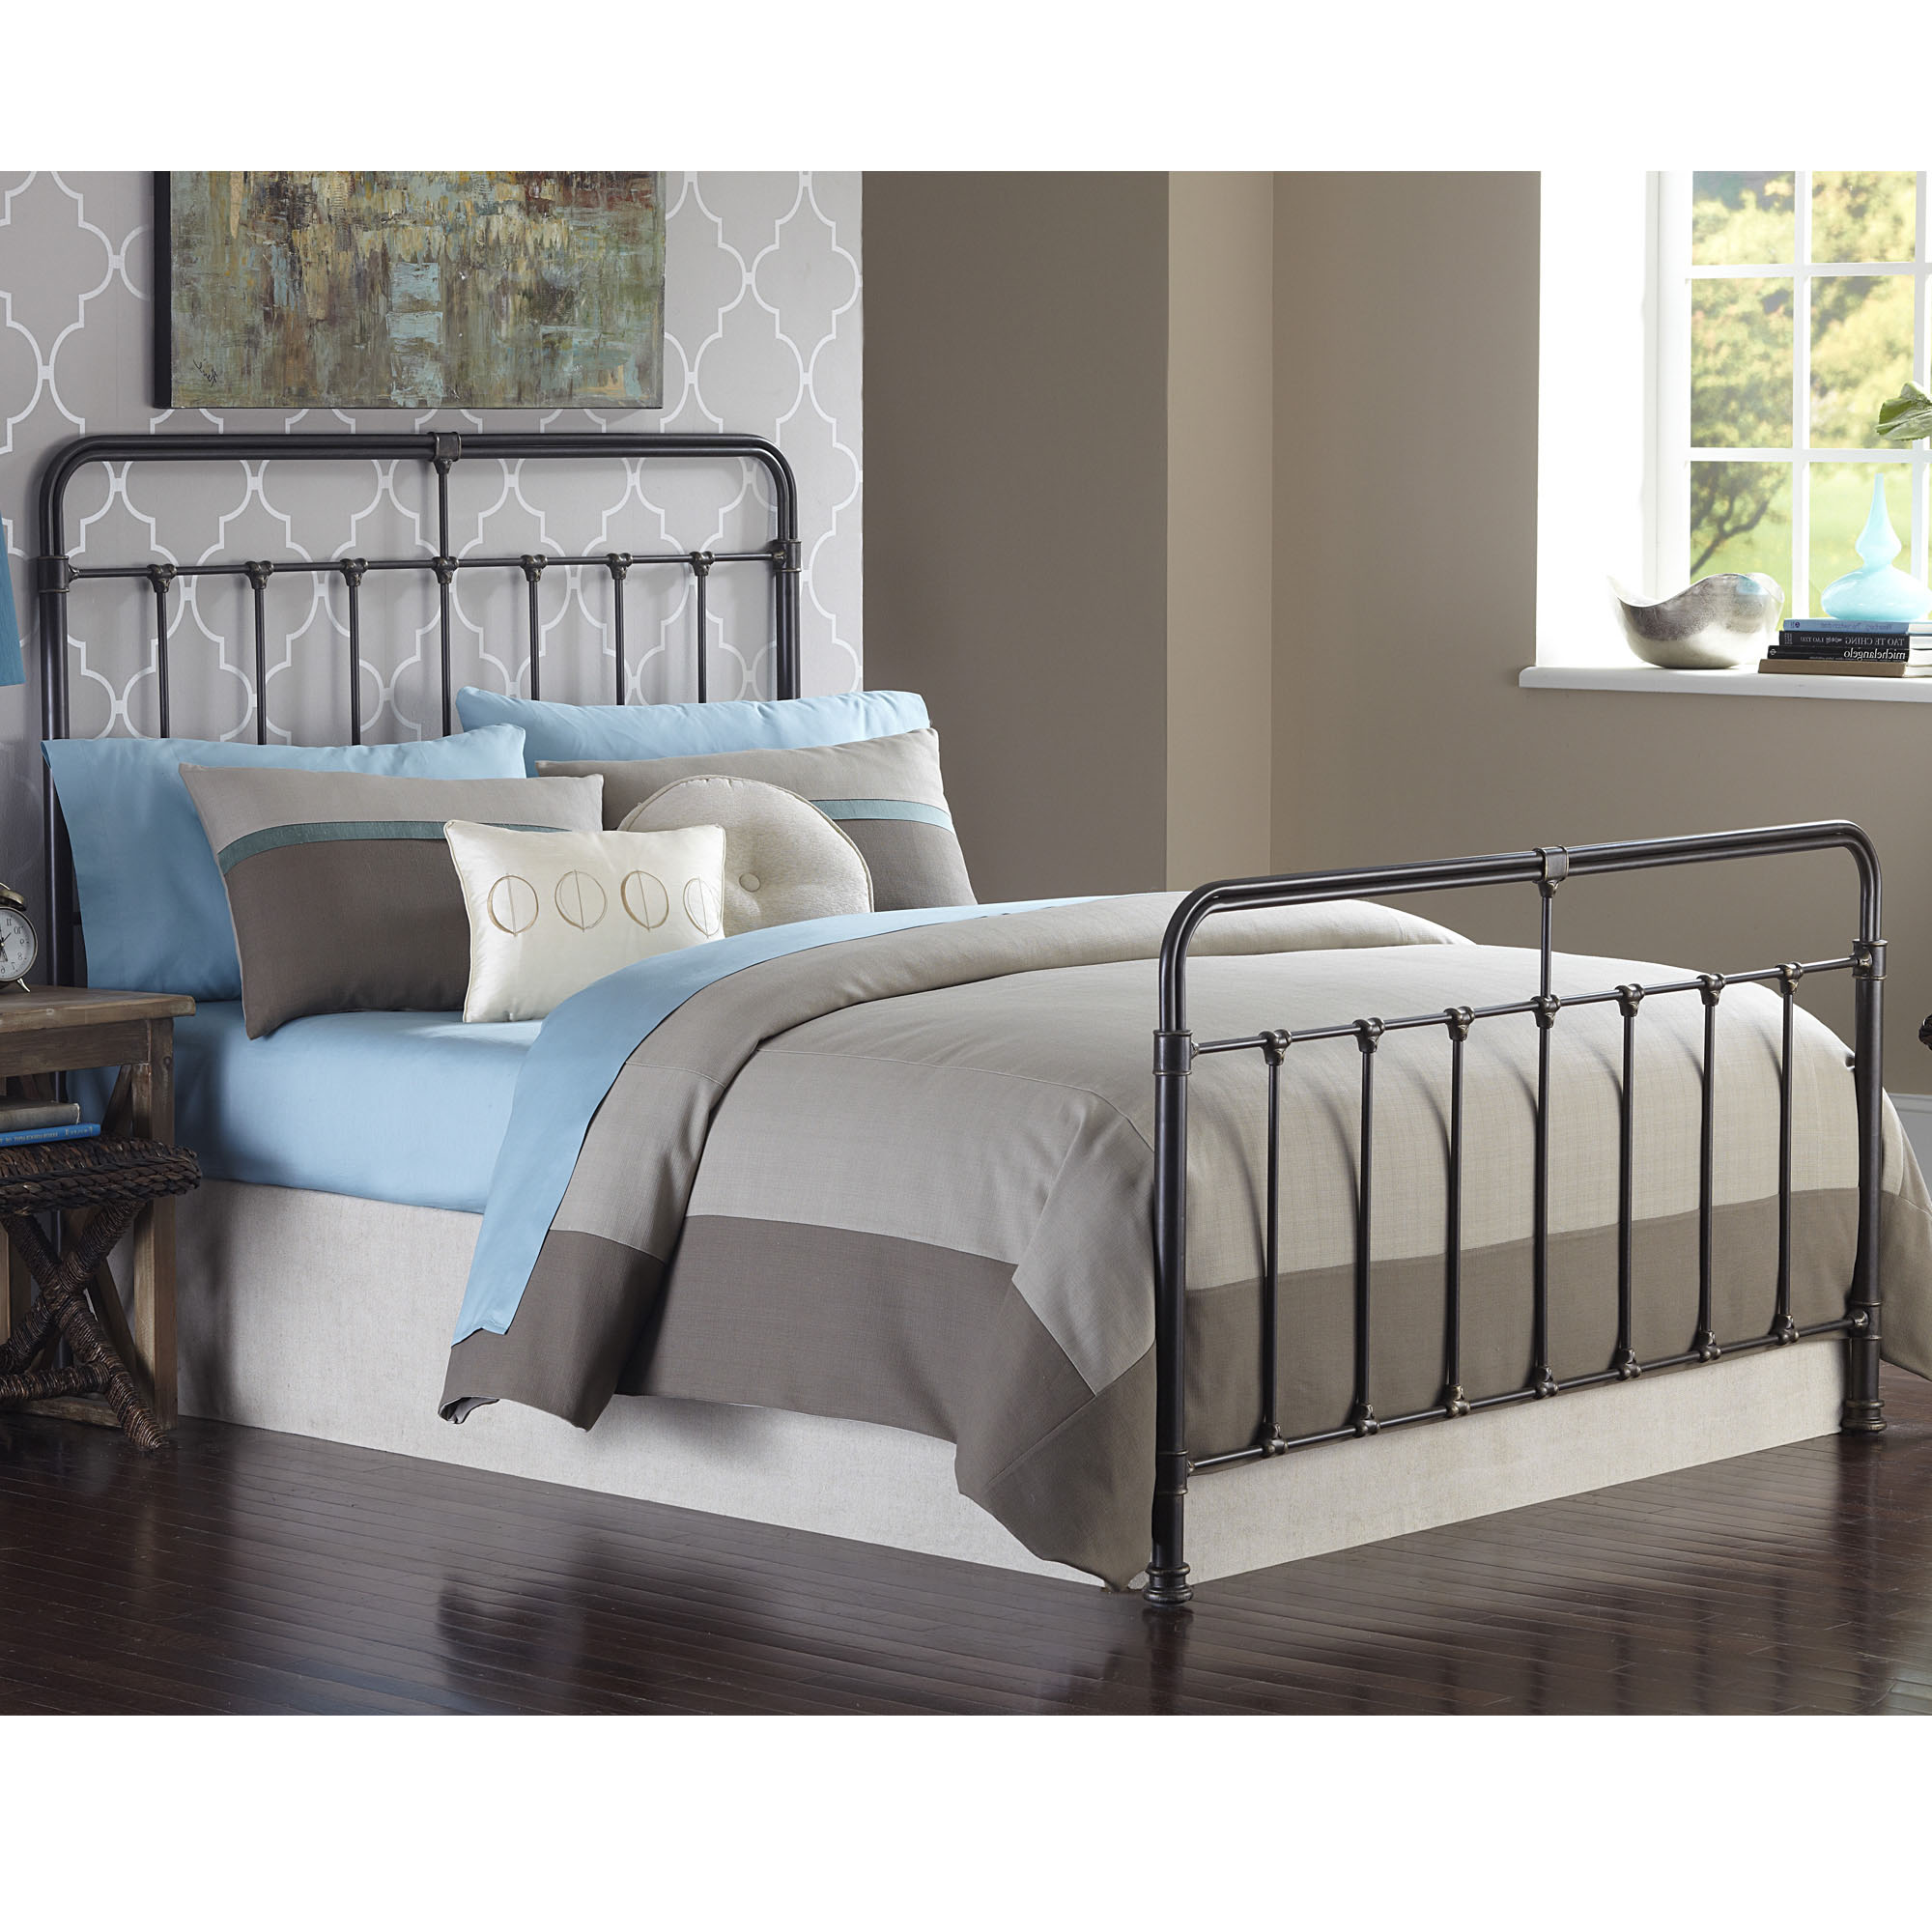 B10066ashley Furniture Q K Ck Bolt On Bed Frame Westco Home